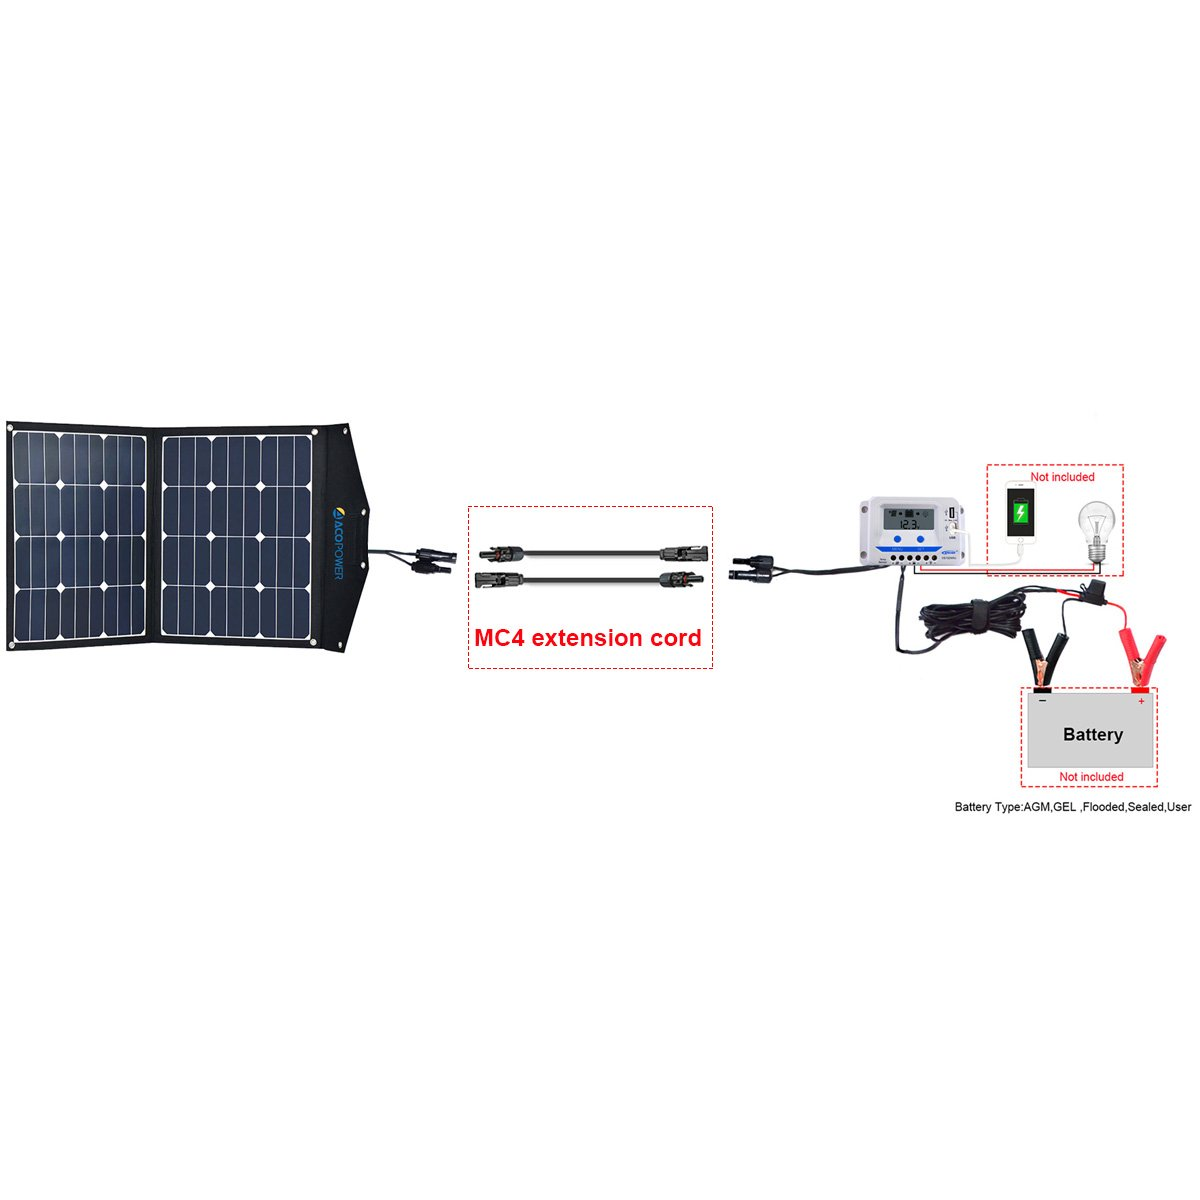 12V Foldable Solar Panel with 10A Charge Controller in Suitcase ACOPOWER 120W Portable Solar Panel Kits